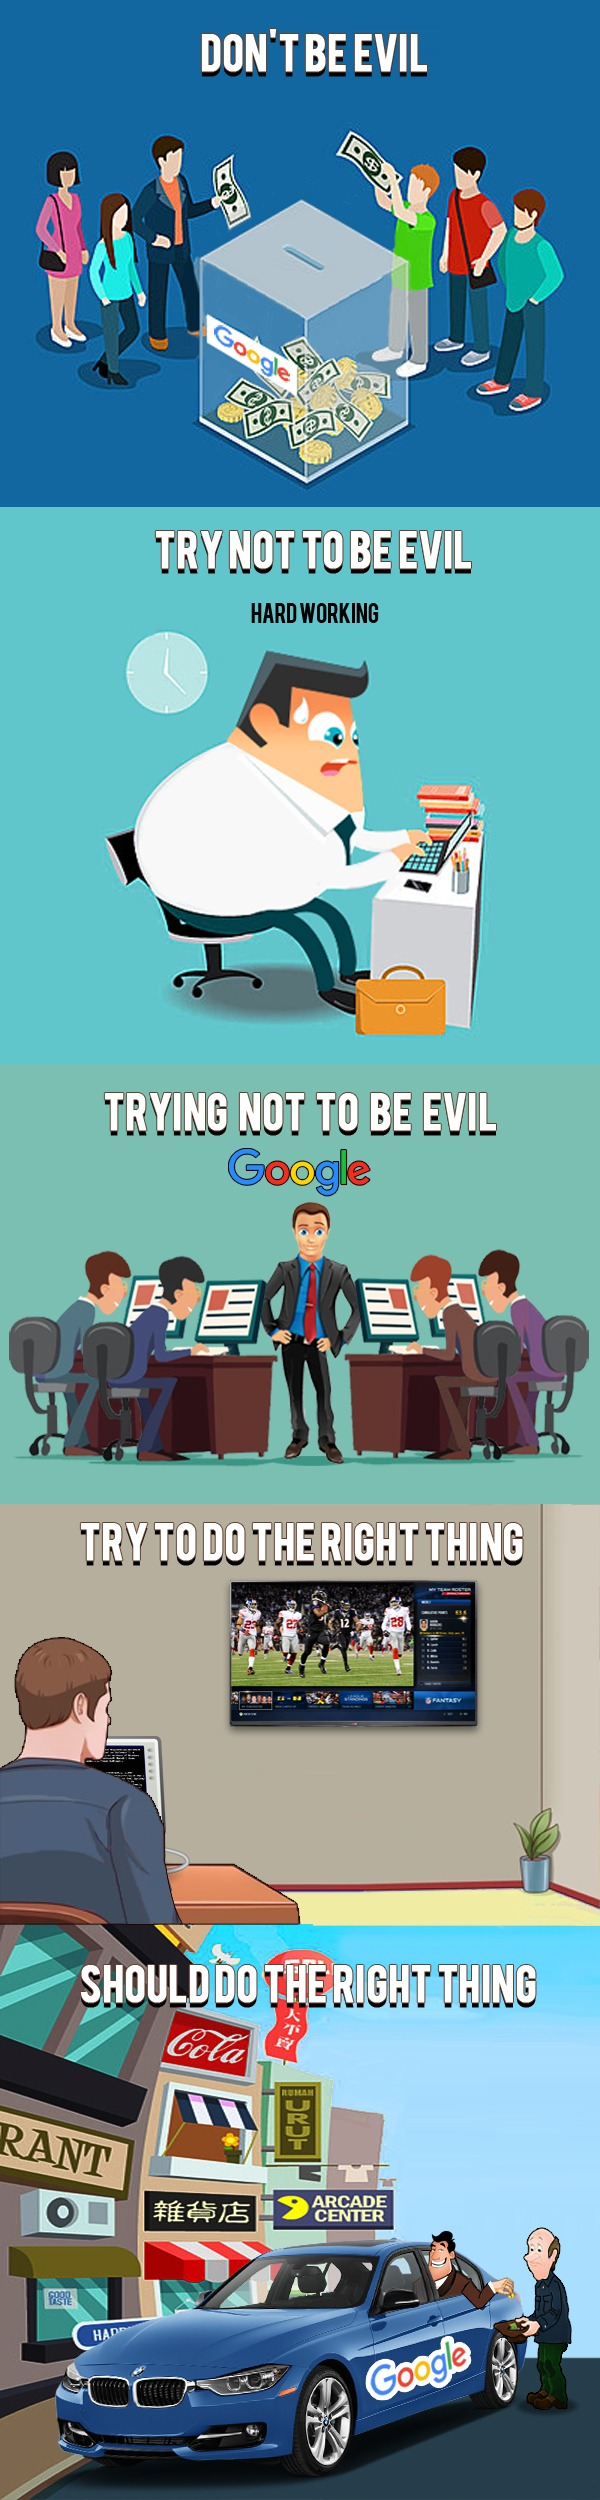 Google do the right thing don't be evil